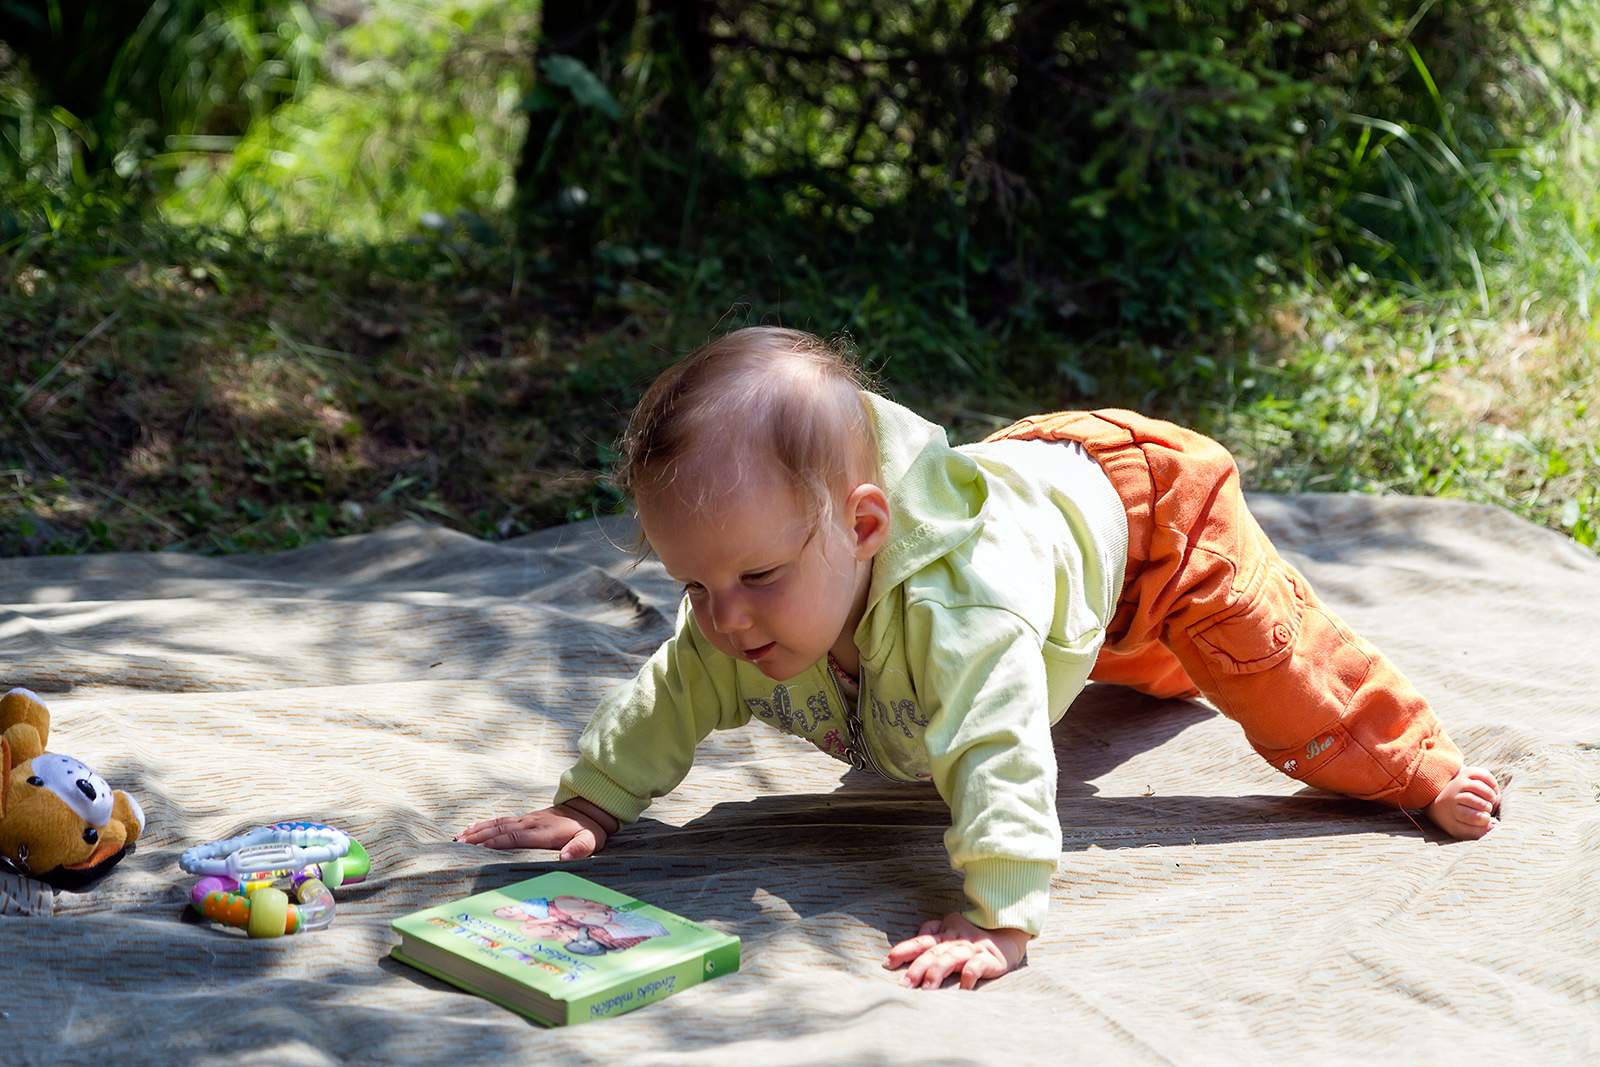 First attempts at crawling. Cheile Jietului near Petrosani, Romania.